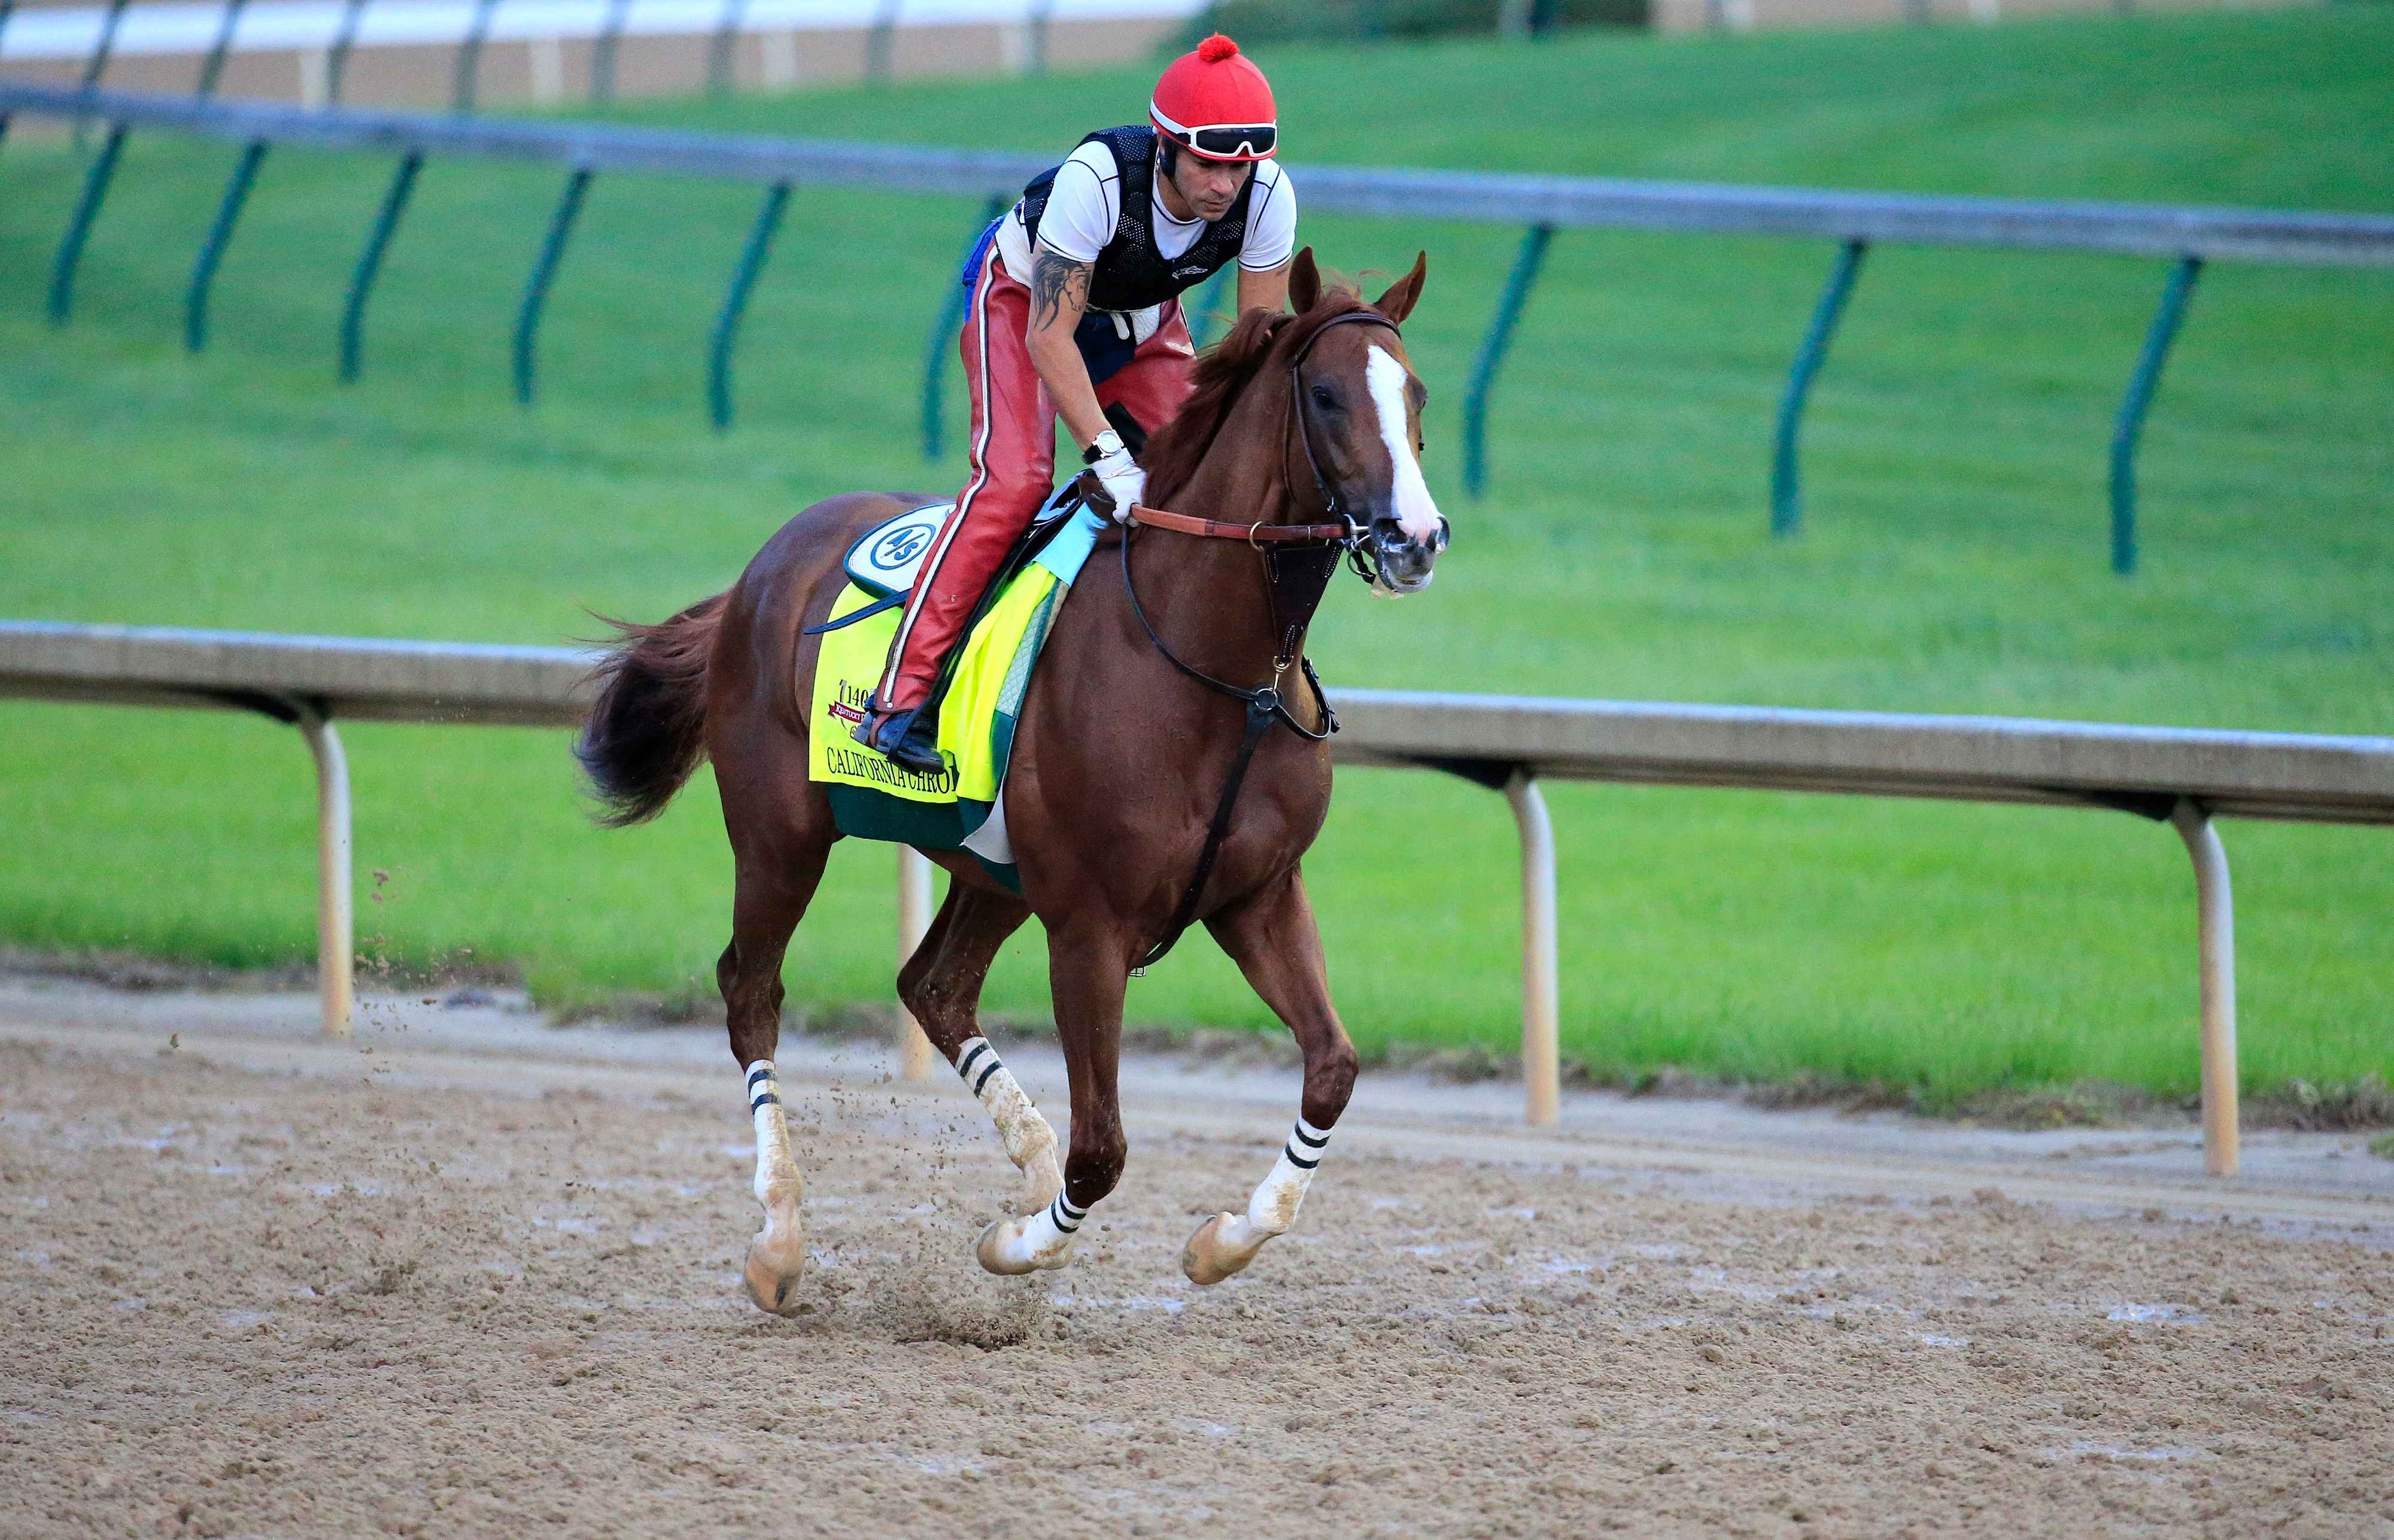 A $1 Oaks/Derby Double of Untapable and California Chrome will return a whopping $5.70. Don't spend it all in one place.